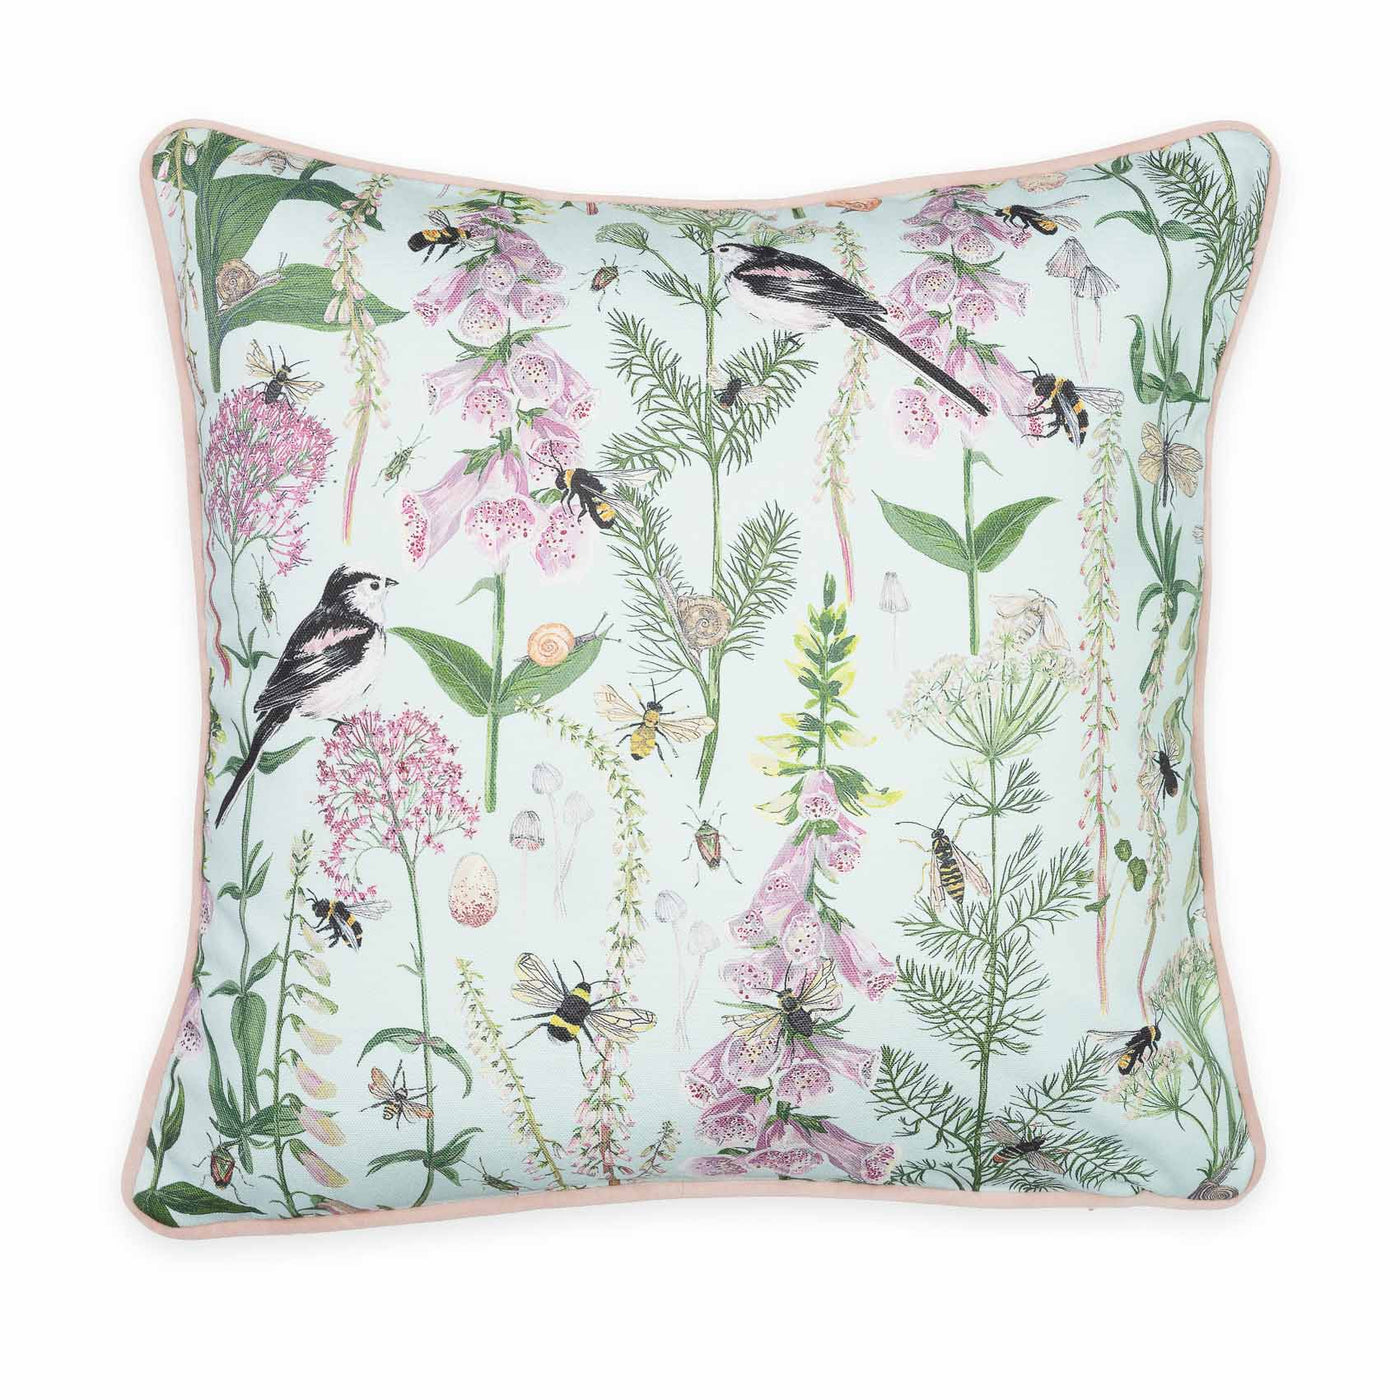 Longtail and Foxglove Cushion - Mint Green